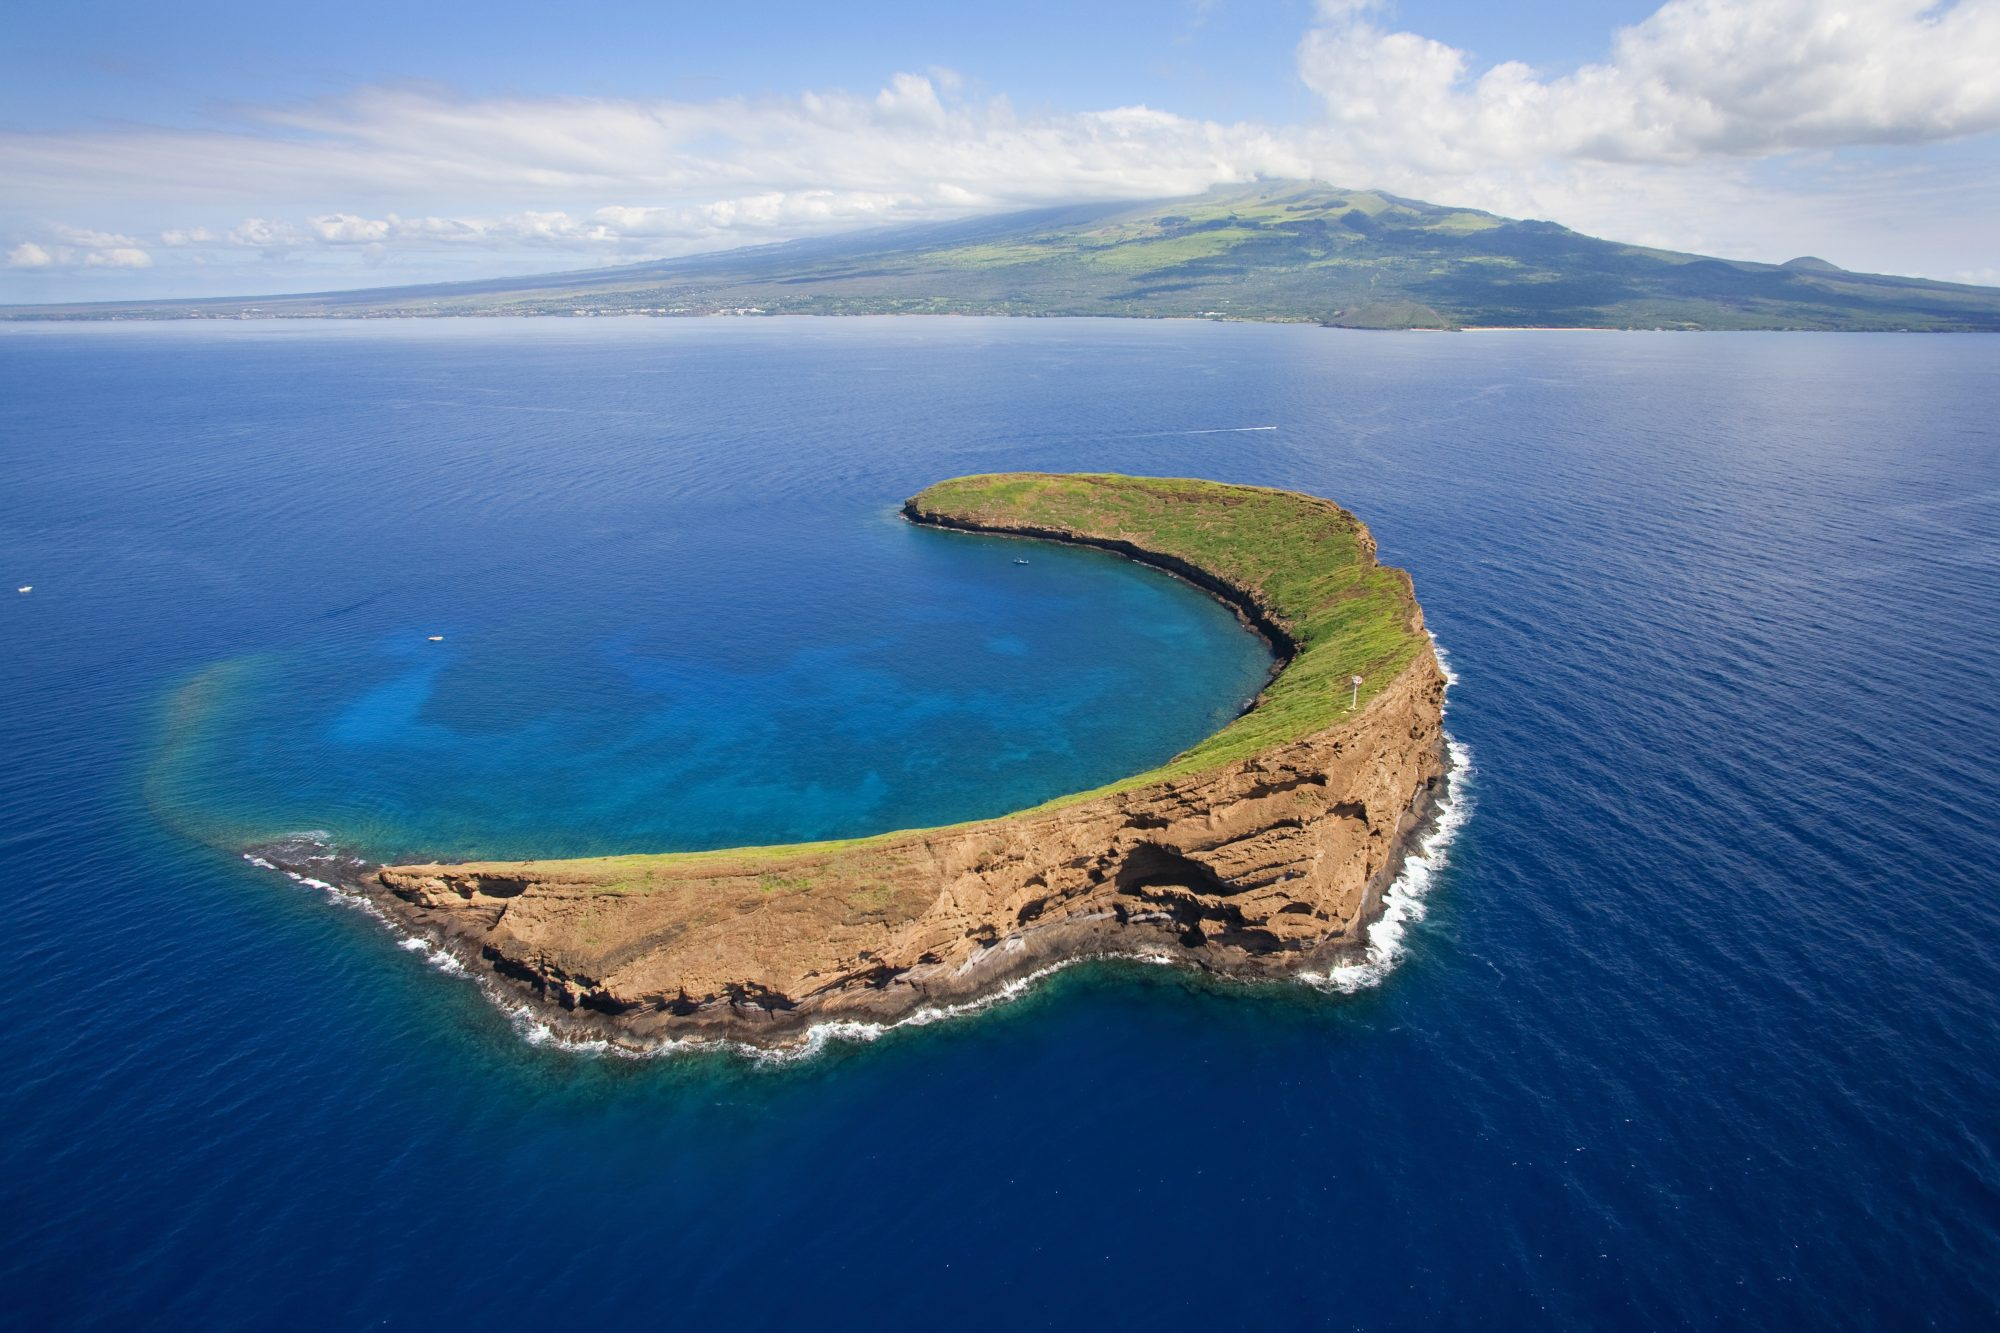 Molokini islet, famous snorkeling location off the coast of Maui, Hawaii. Molokini is a marine preserve protected by the State of Hawaii. Maui is in the background.